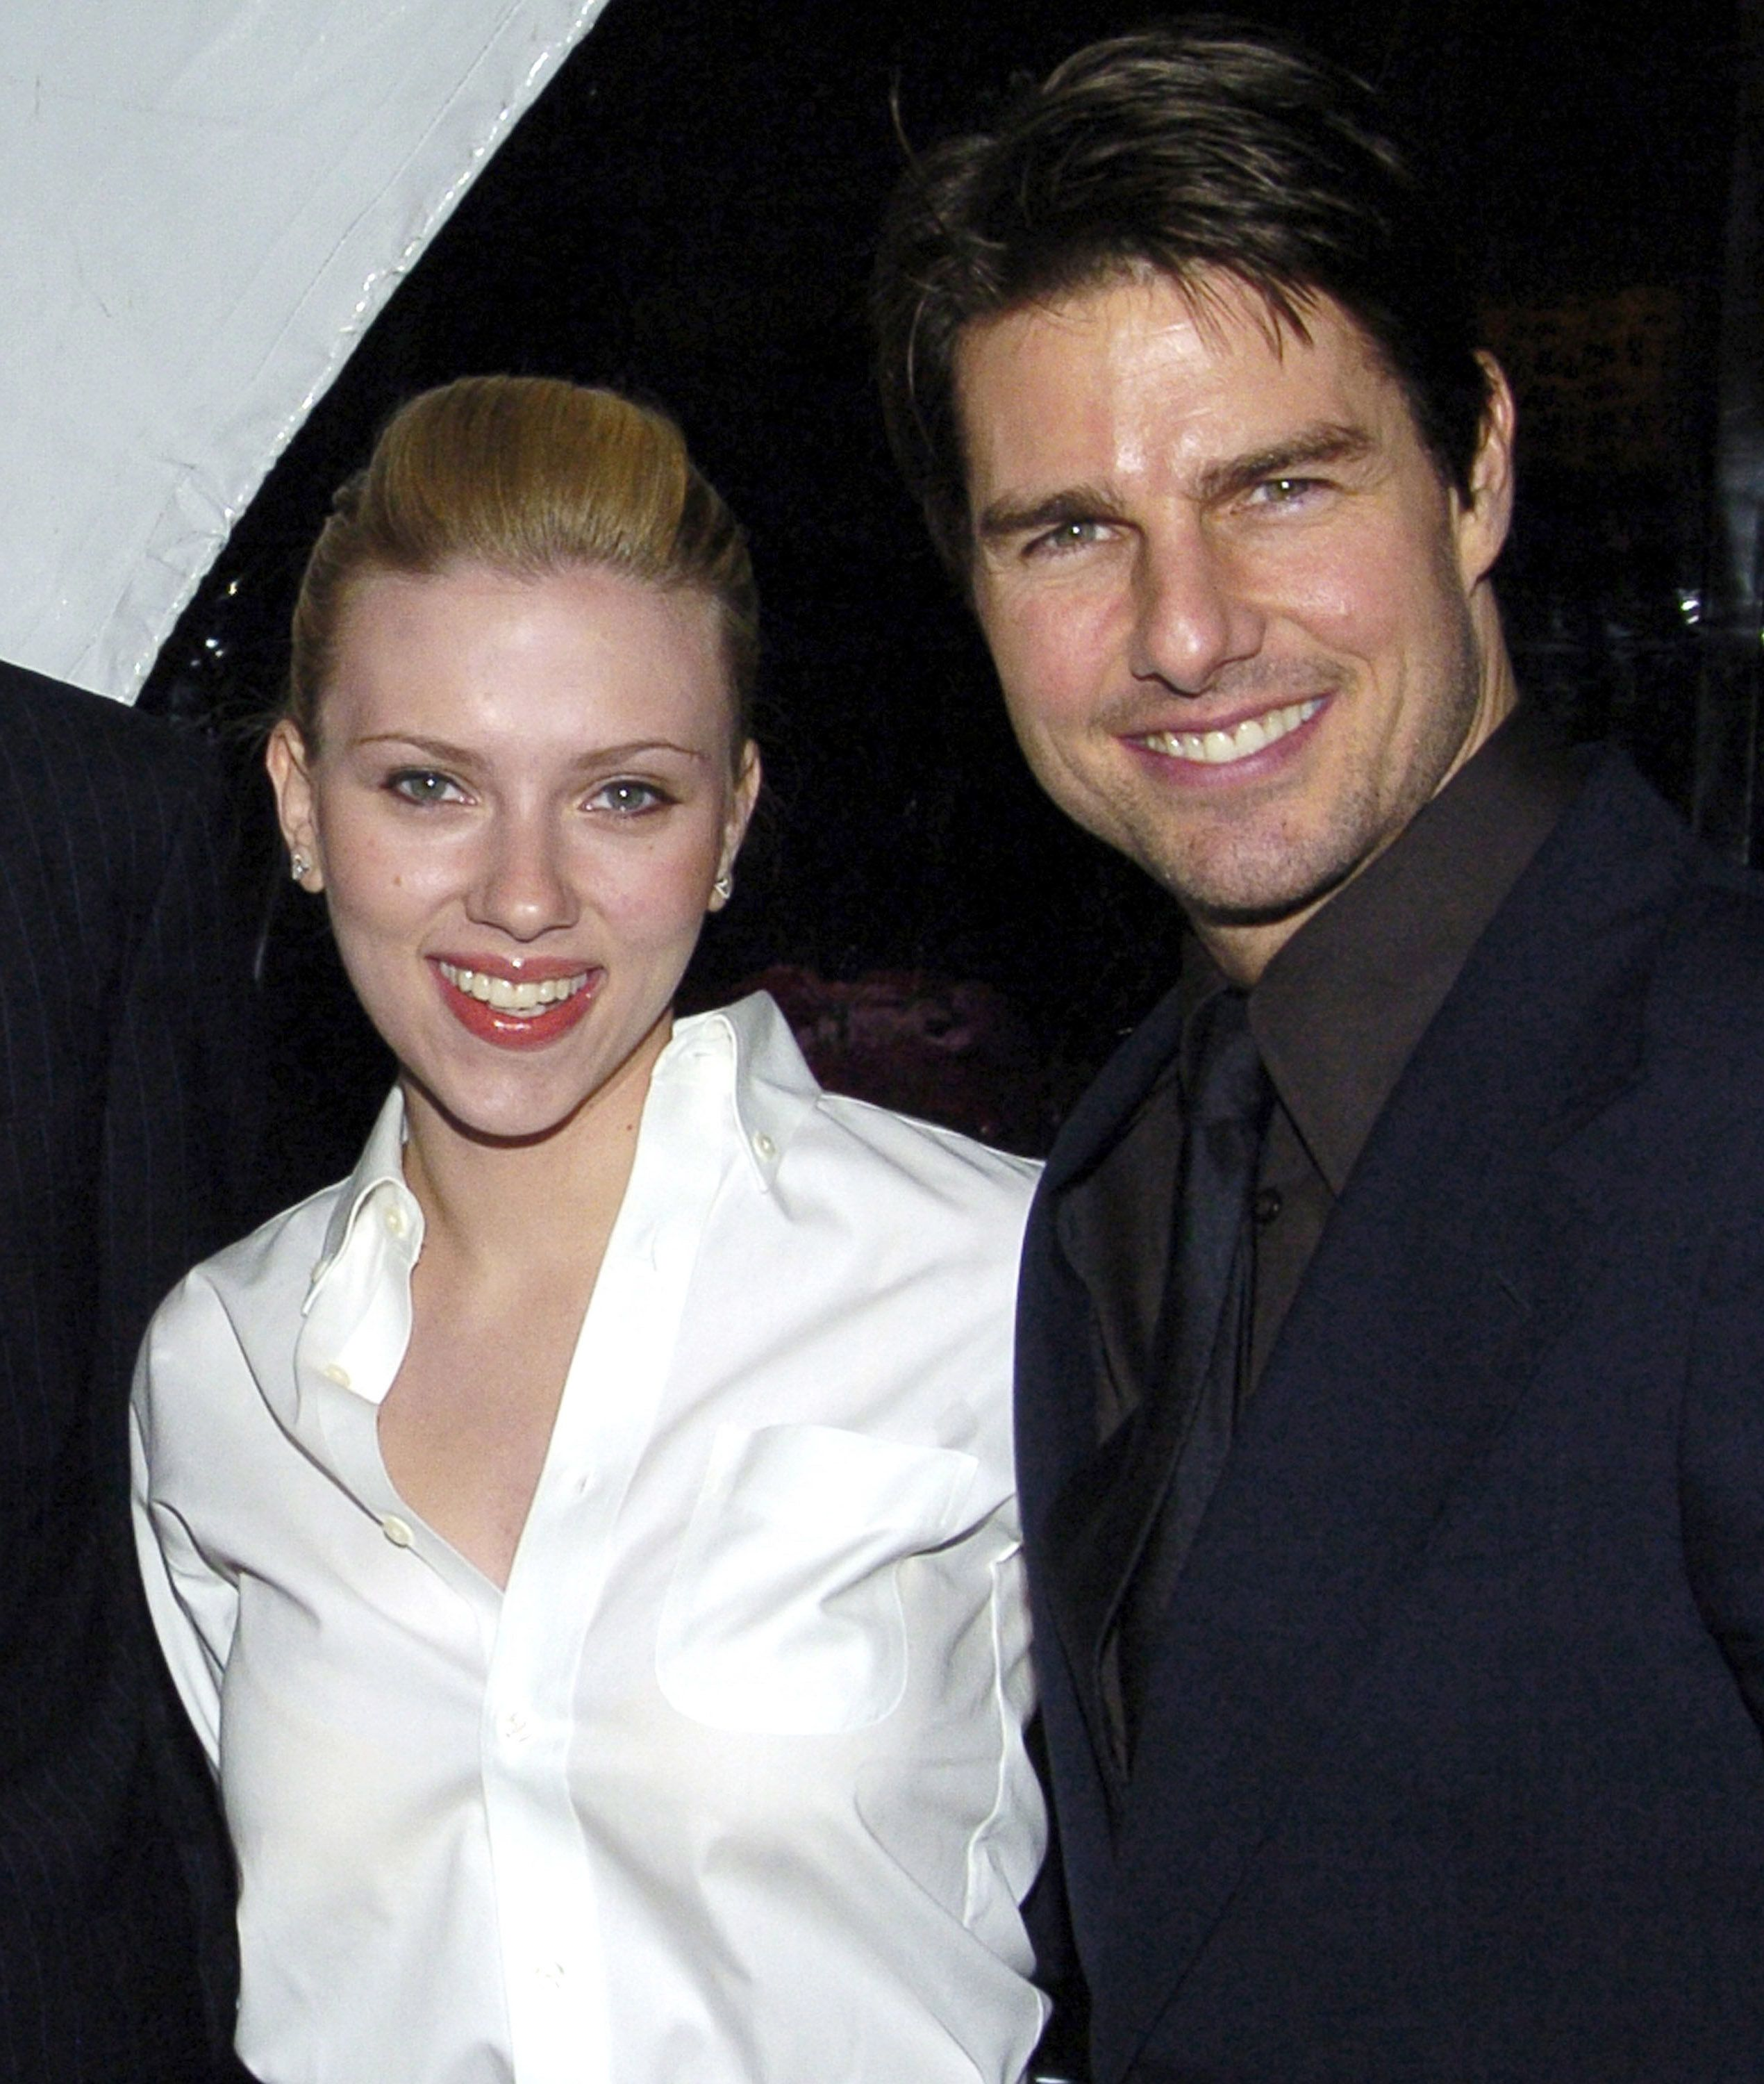 Scarlett Johansson and Tom Cruise pictured together at a benefit.